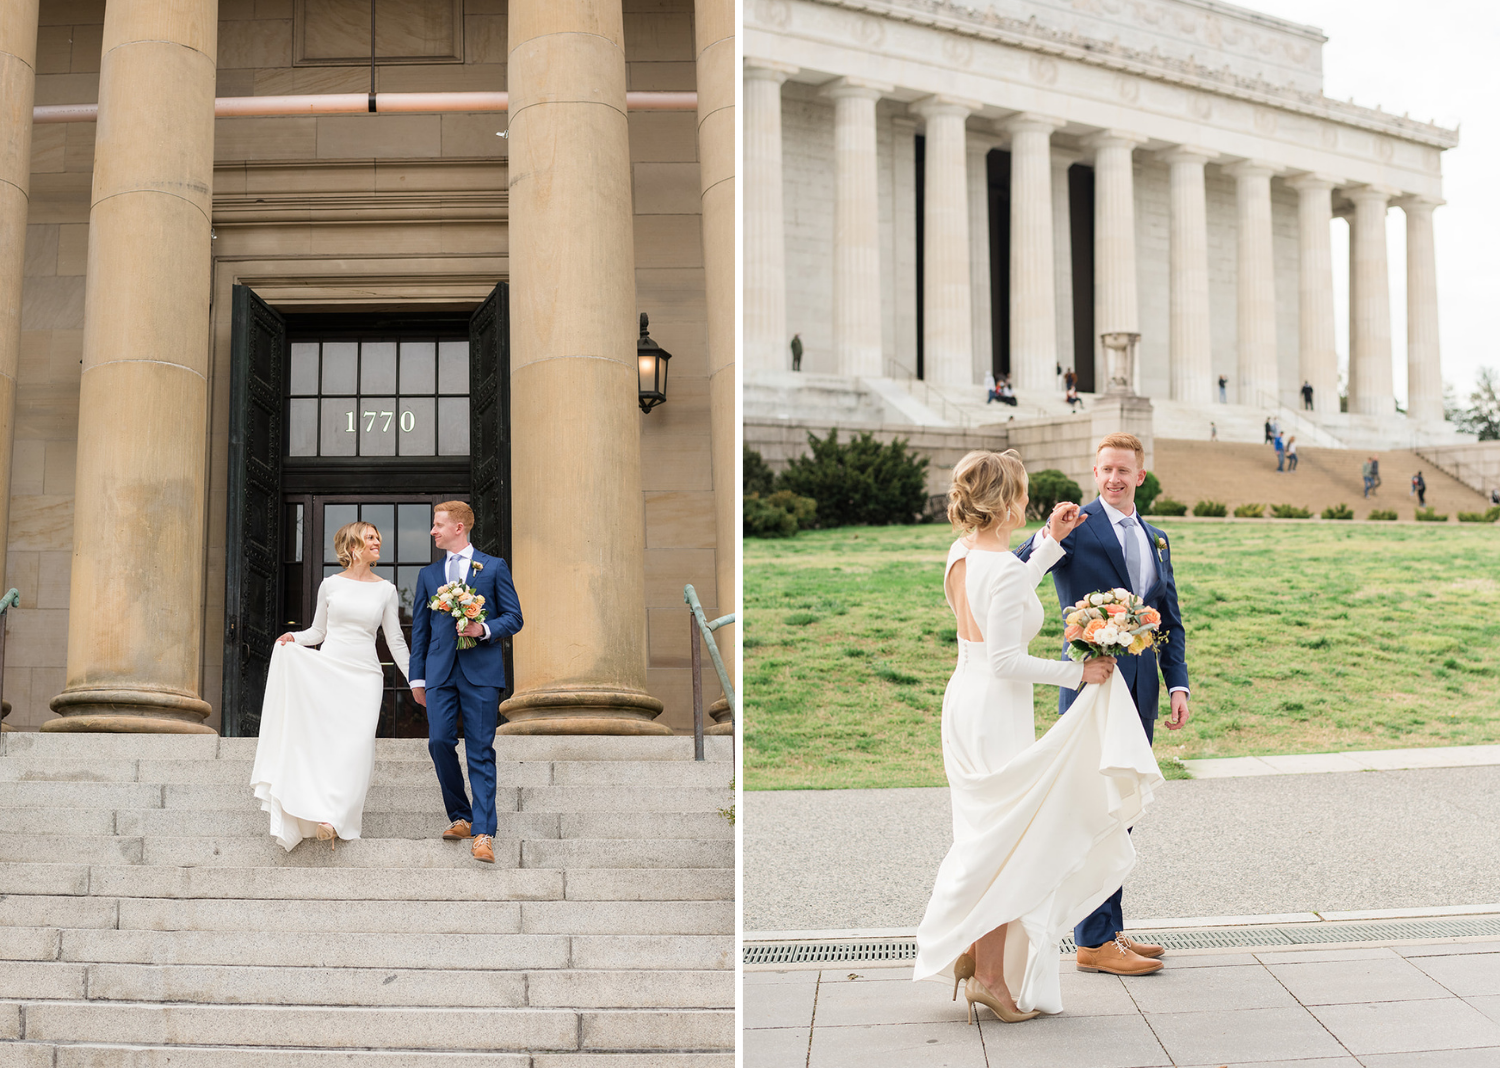 bride and groom going on a walk in washington d.c before their wedding ceremony